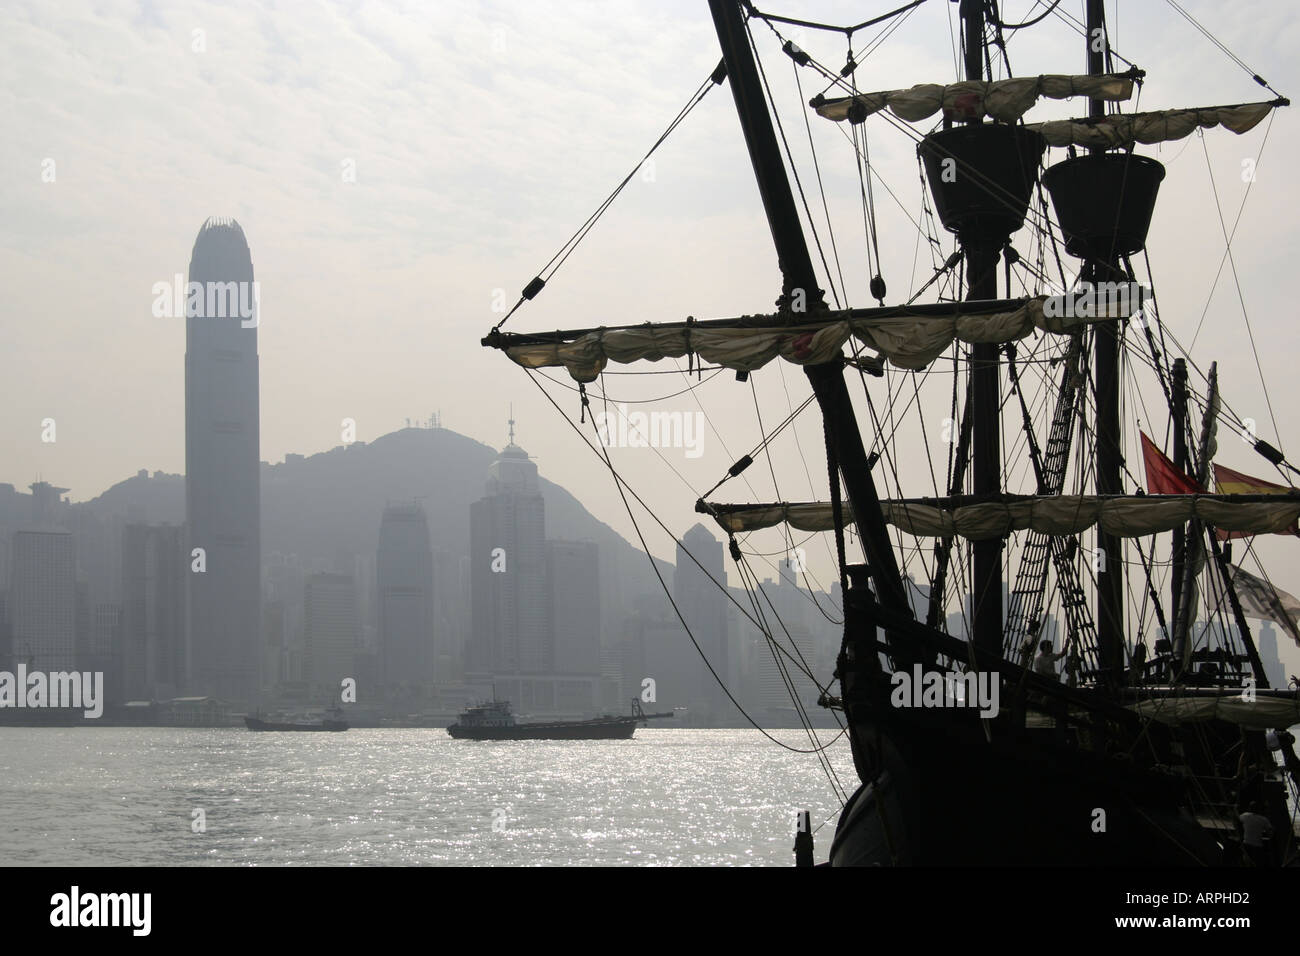 Piracy on the South China Sea - Stock Image